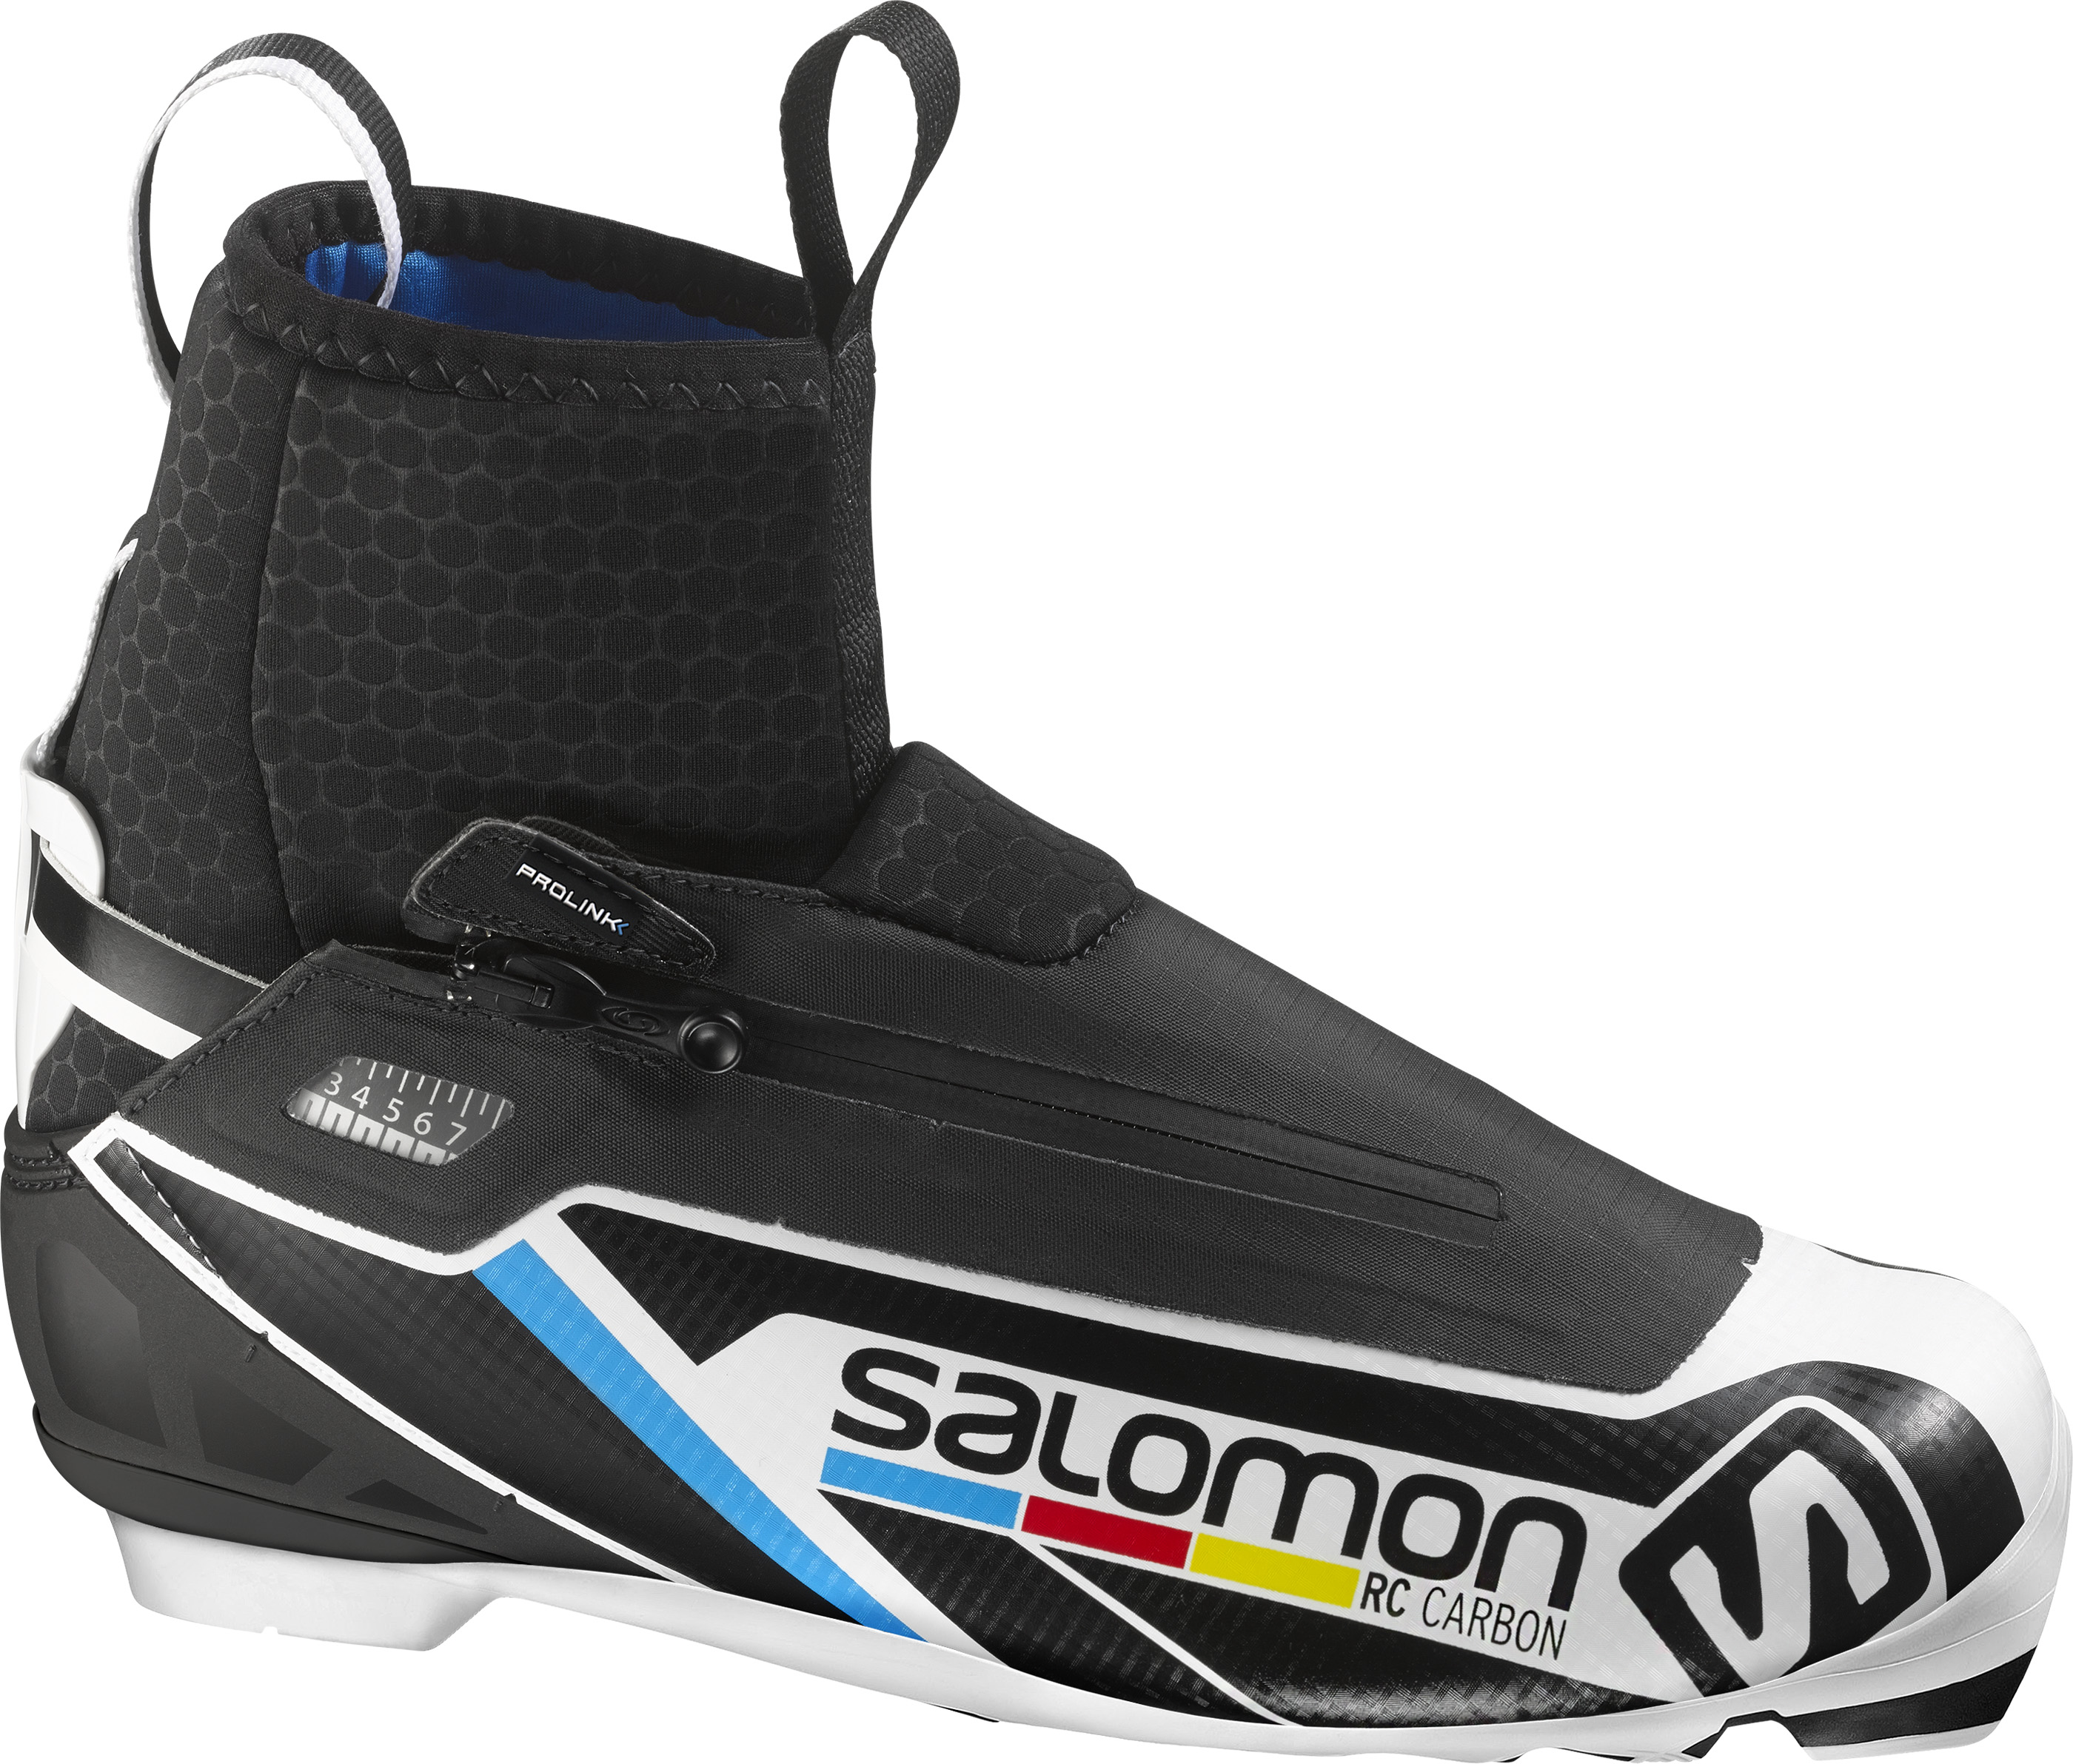 SALOMON RC CARBON PROLINK 17/18